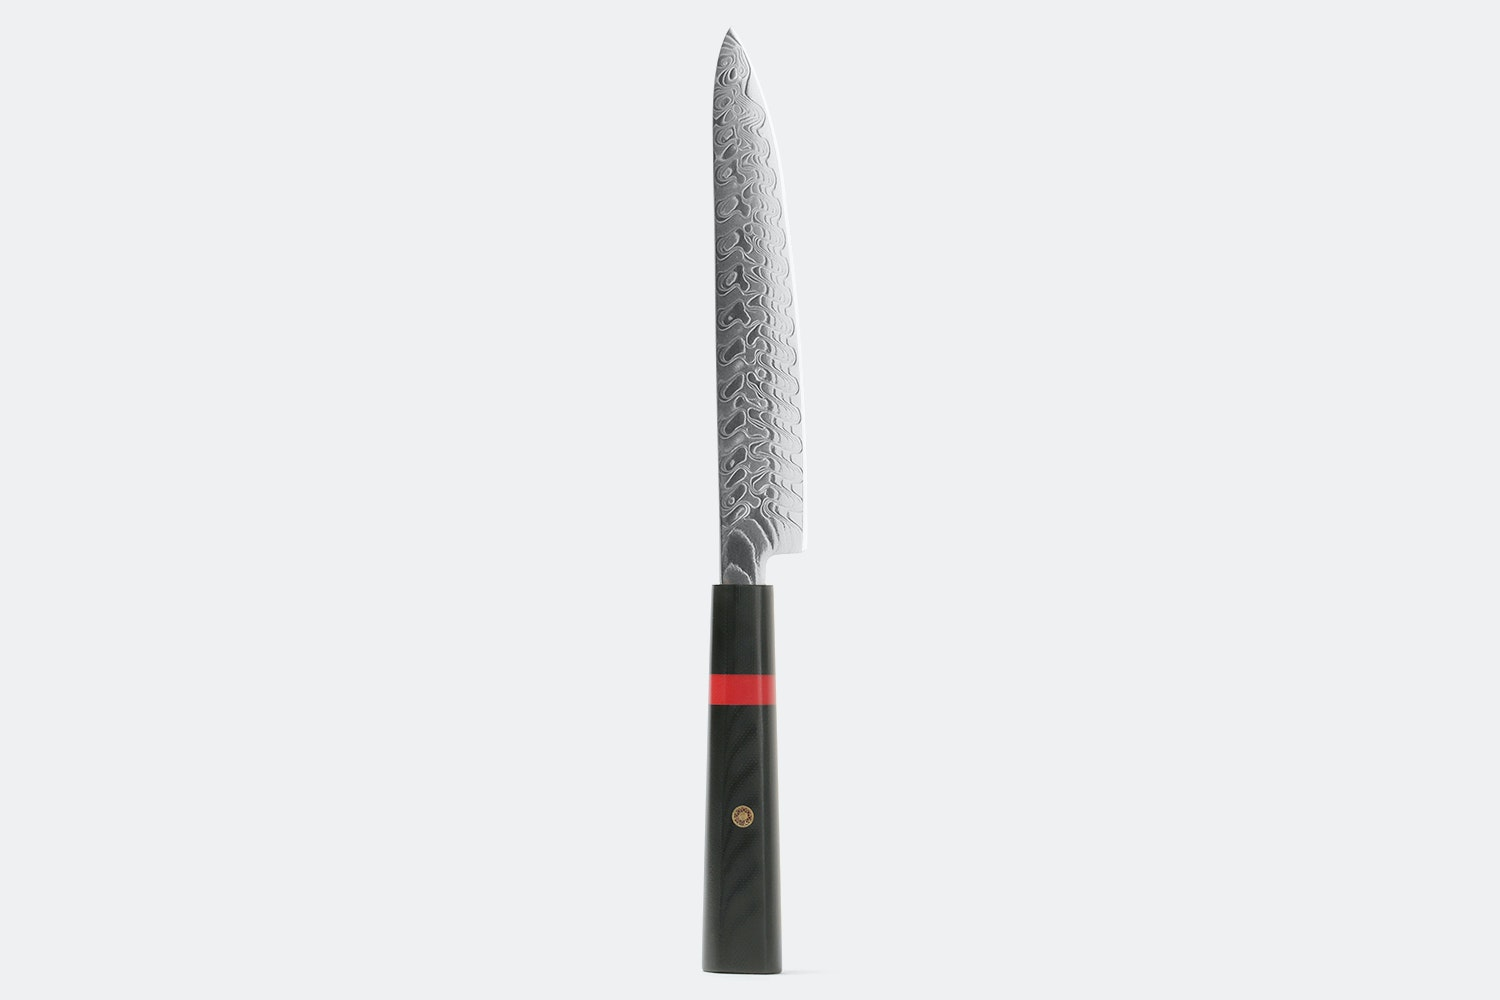 Massdrop x Apogee Takumi Paring/Petty Kitchen Knife